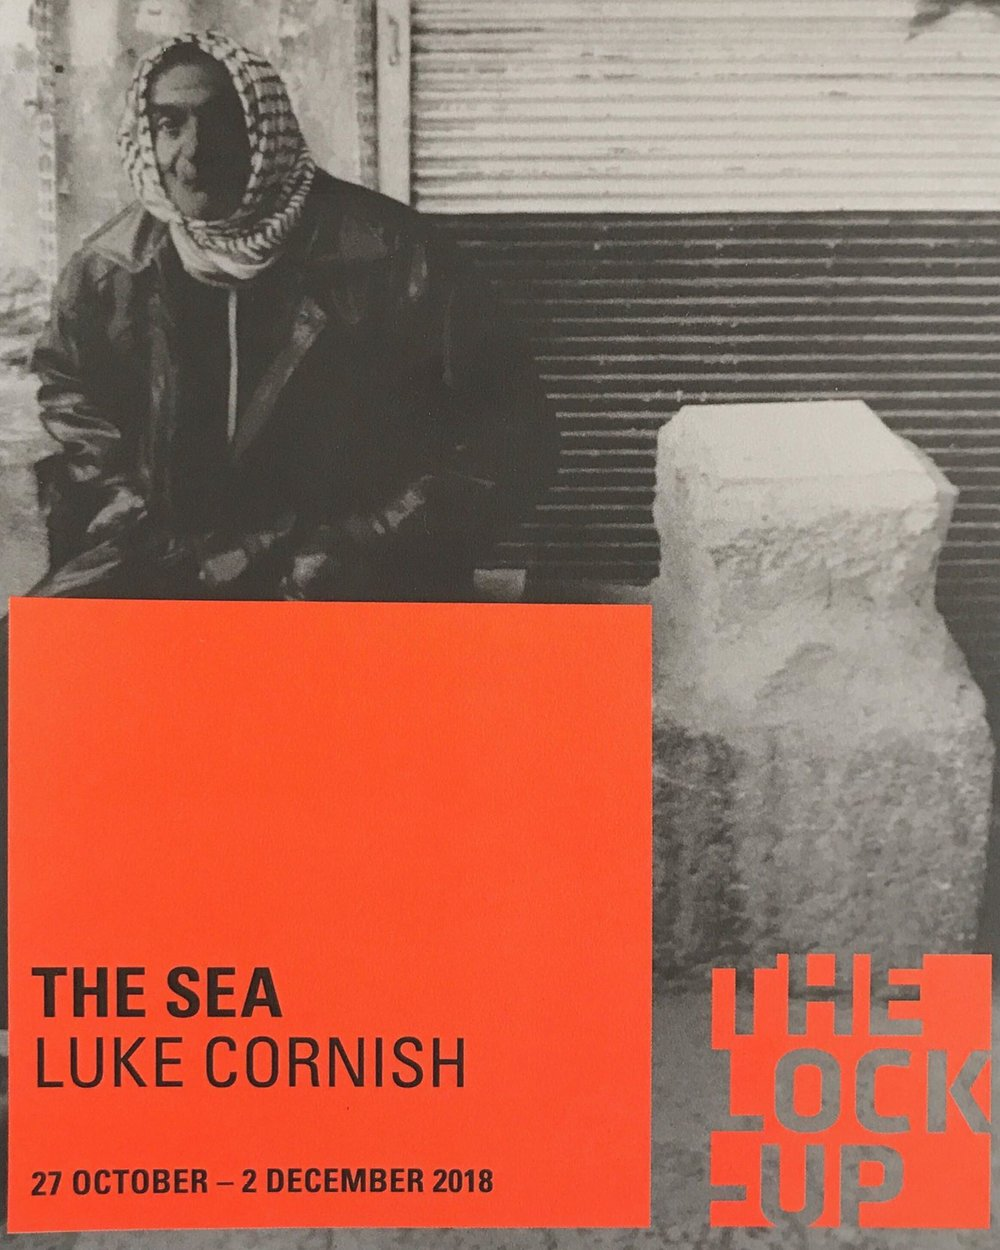 """Opening Saturday 27th October at 5:30pm at the Lock up art space, 90 Hunter St Newcastle NSW """"Award winning stencil artist Luke Cornish (ELK) presents a solo exhibition of works informed by three trips to war torn Syria"""""""